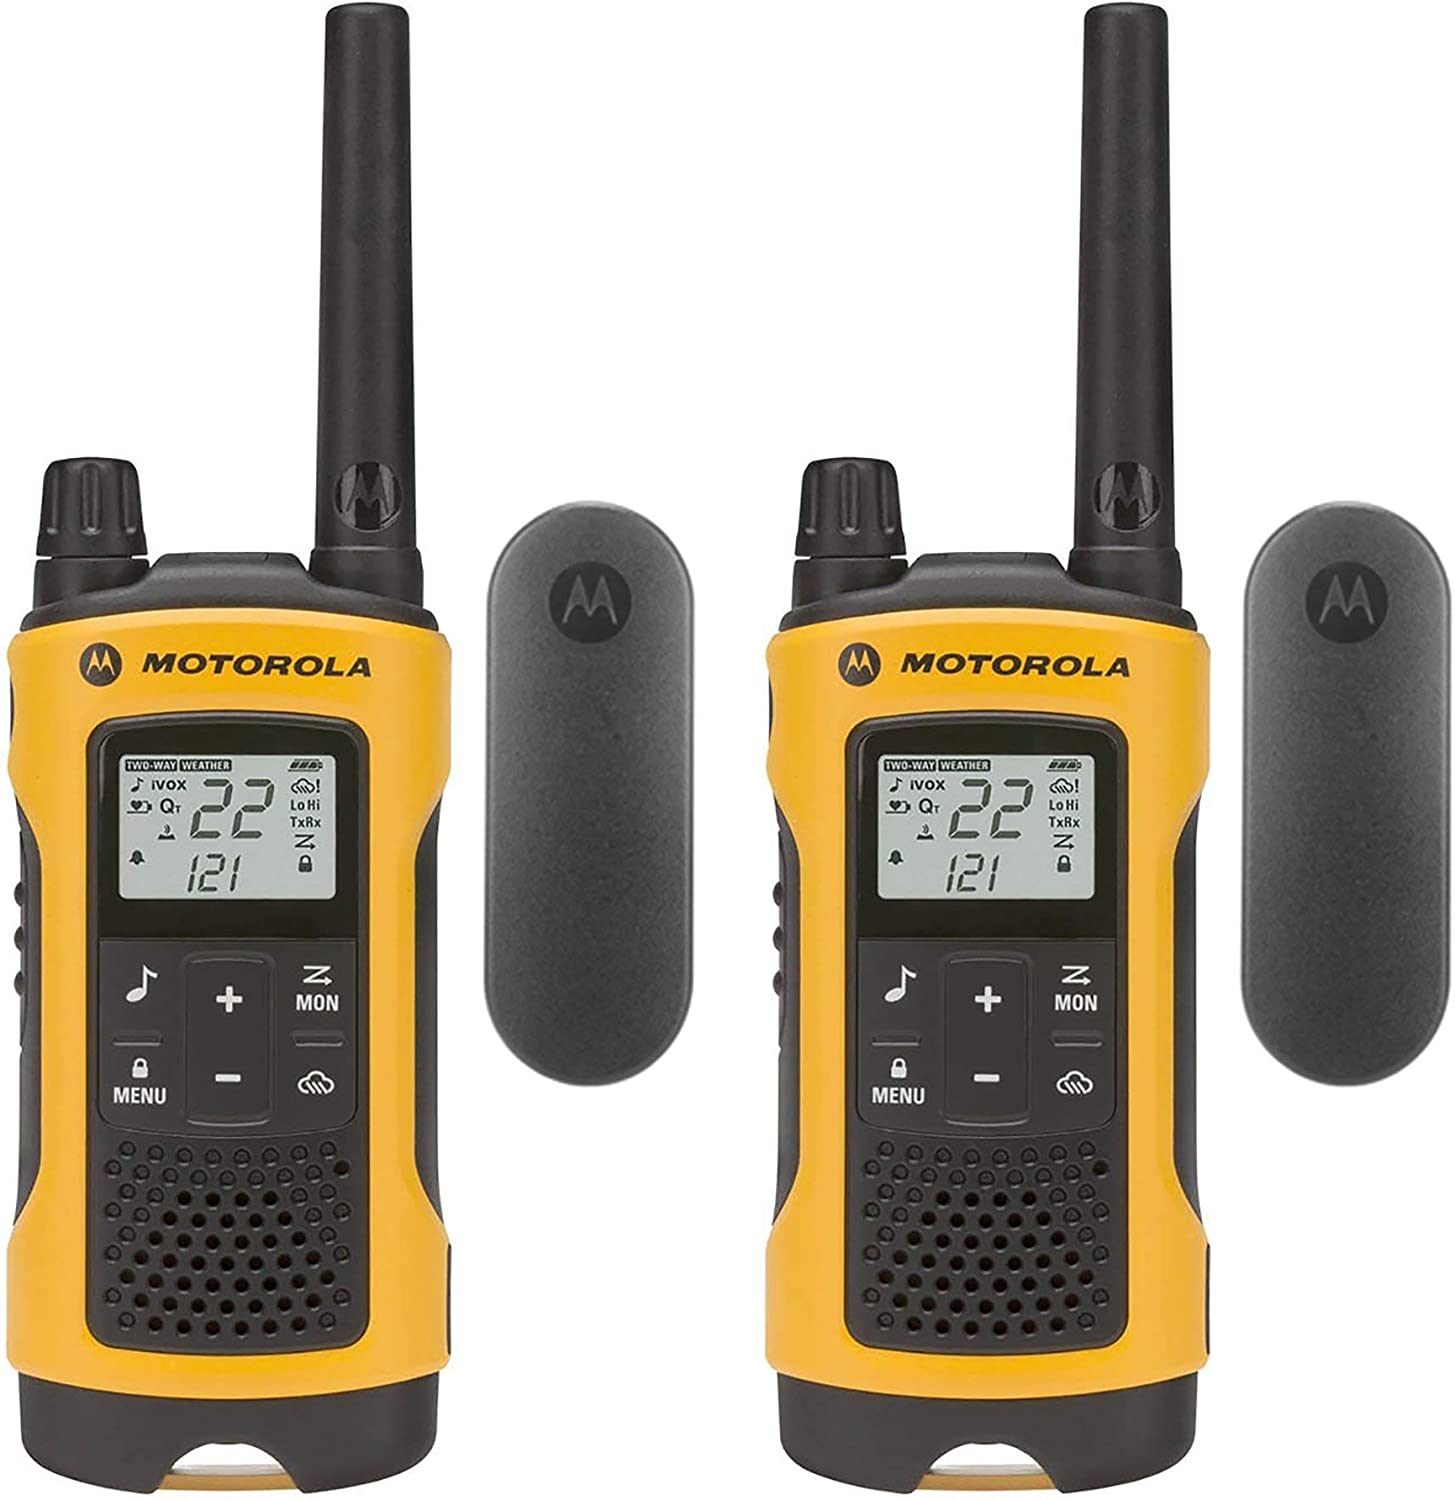 Motorola Talkabout T402 Rechargeable Radios Two-Way Re Time sale 2-Pack Cheap SALE Start